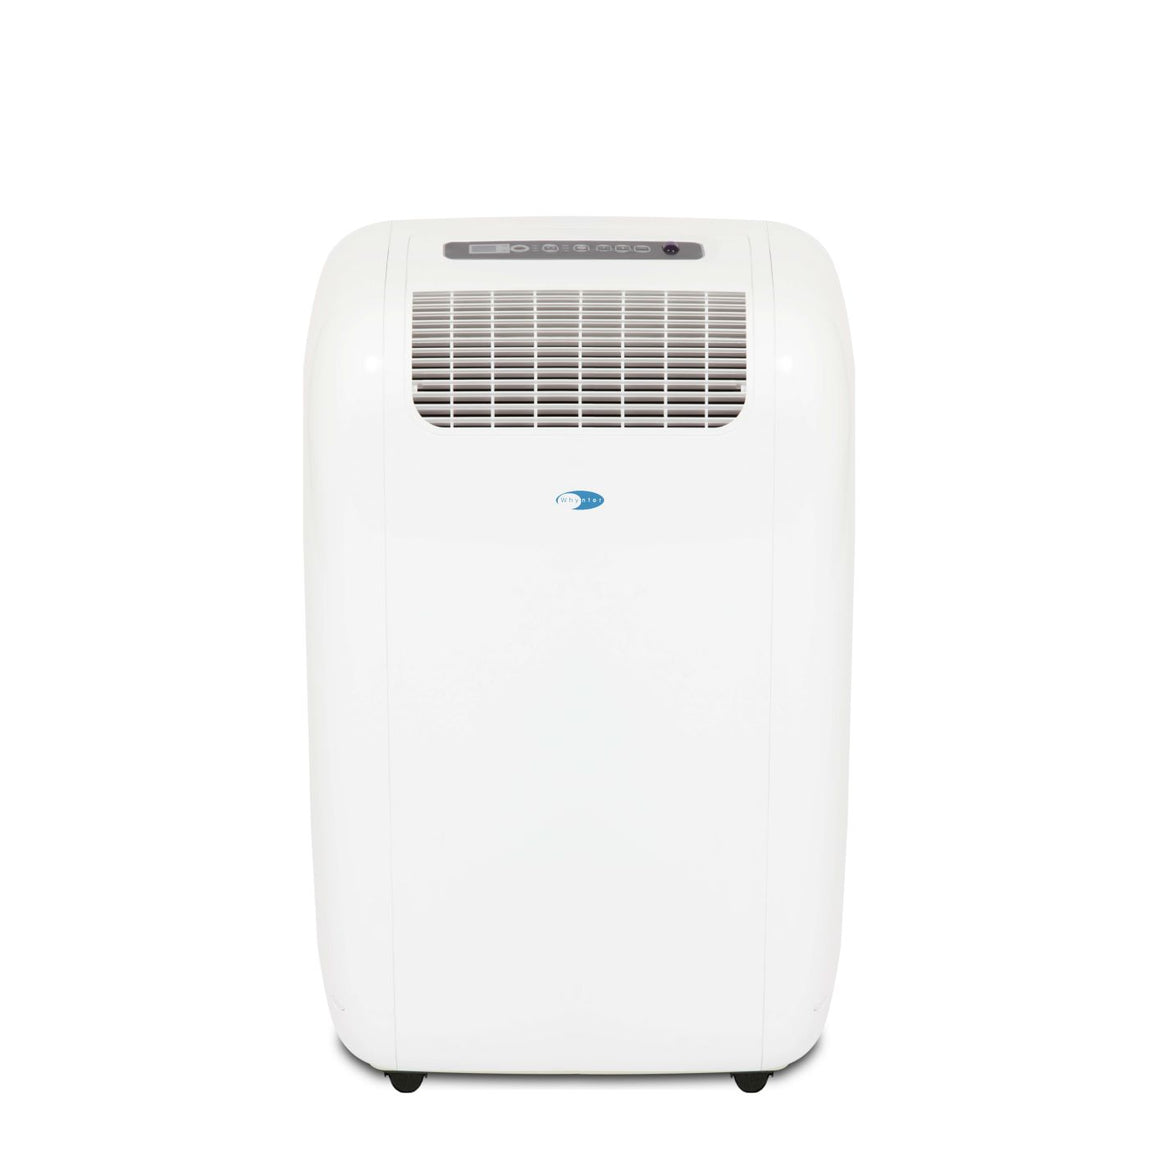 Whynter CoolSize 10000 BTU Compact Portable Air Conditioner - ARC-101CW - Wine Cooler City